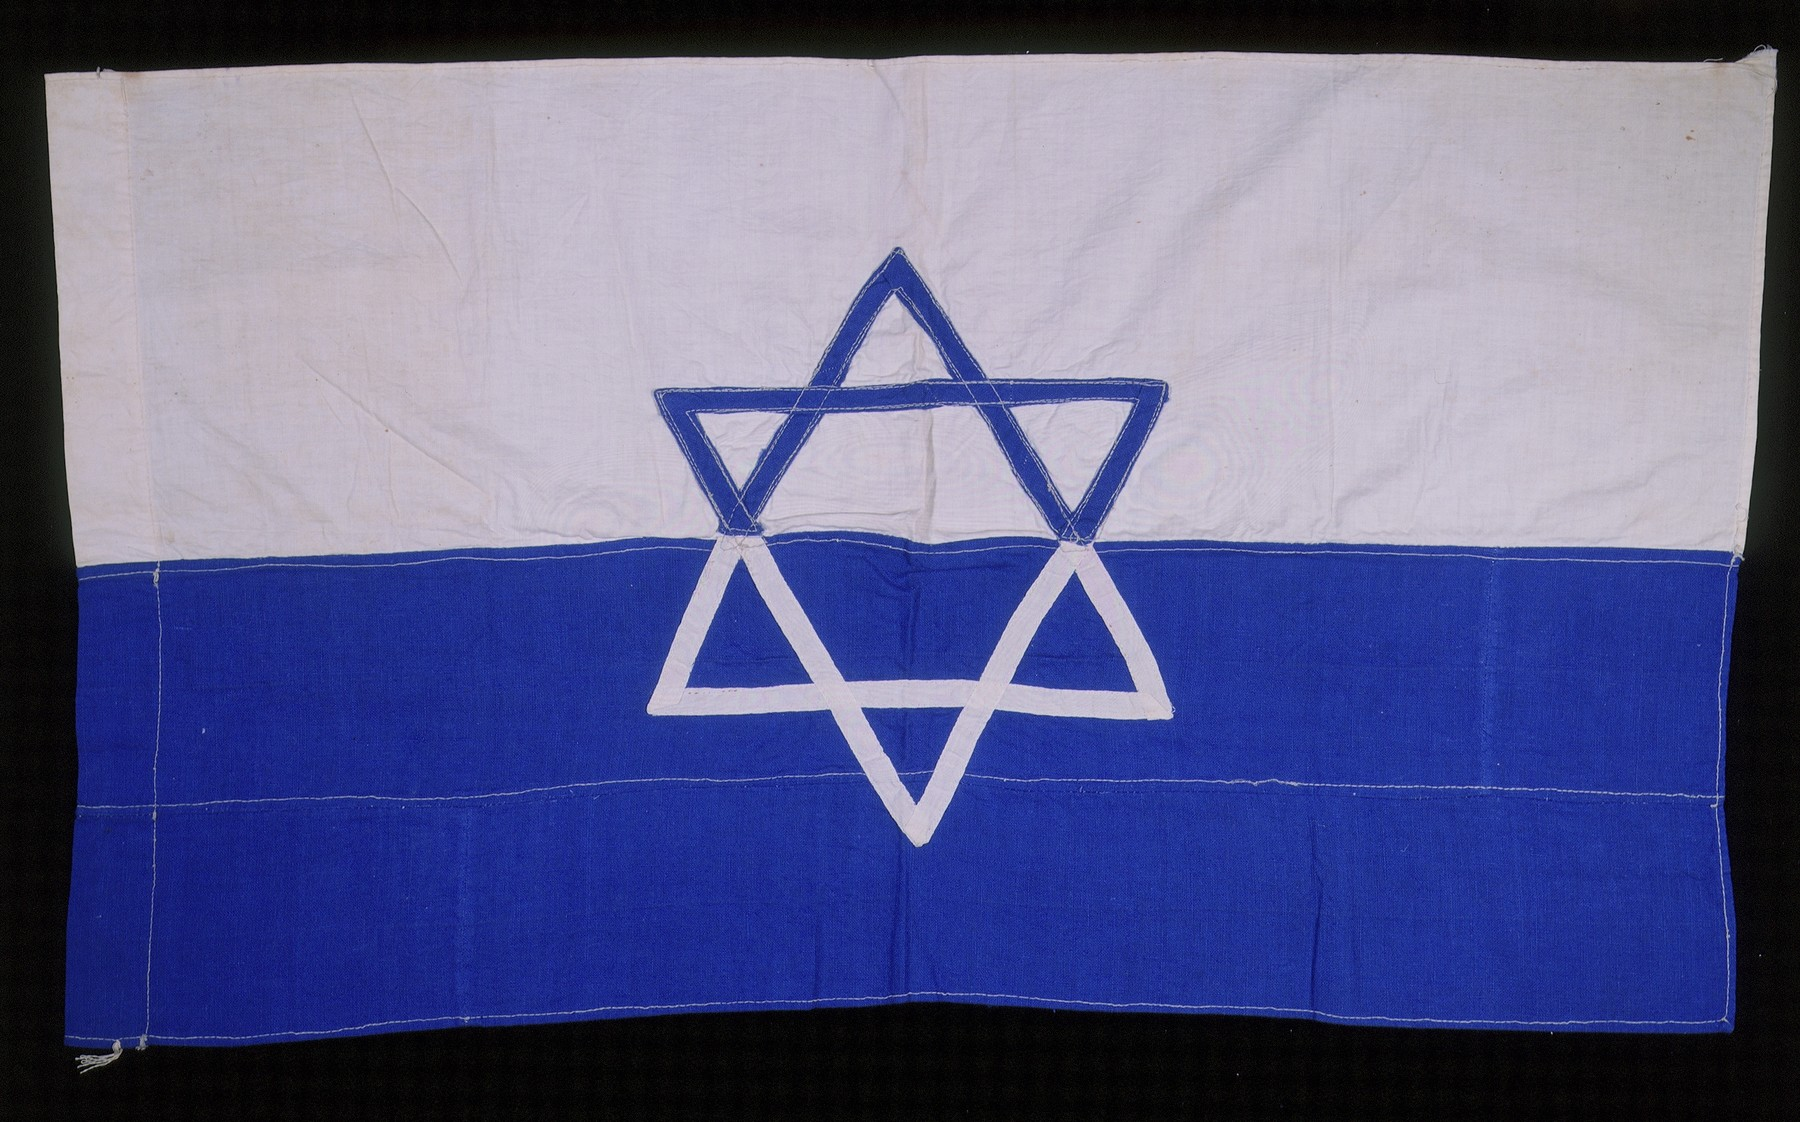 Home-made Zionist flag produced in Shanghai, China.